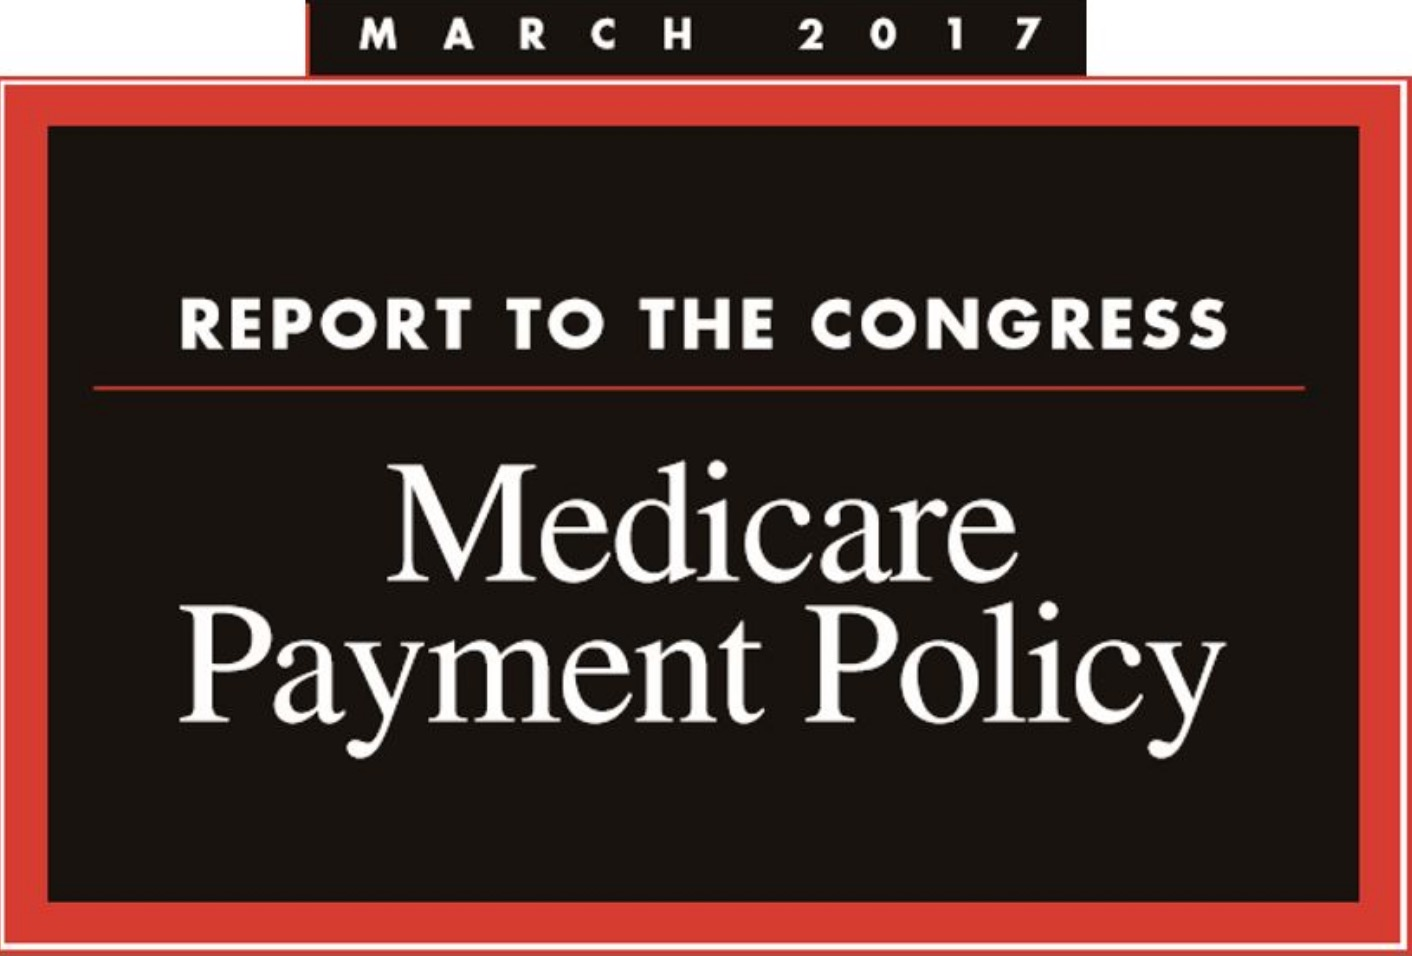 Macra is broken it needs to go away now thcb at its january 12 2017 meeting the medicare payment advisory commission medpac made it clear they had reached the conclusion that the merit based fandeluxe Images